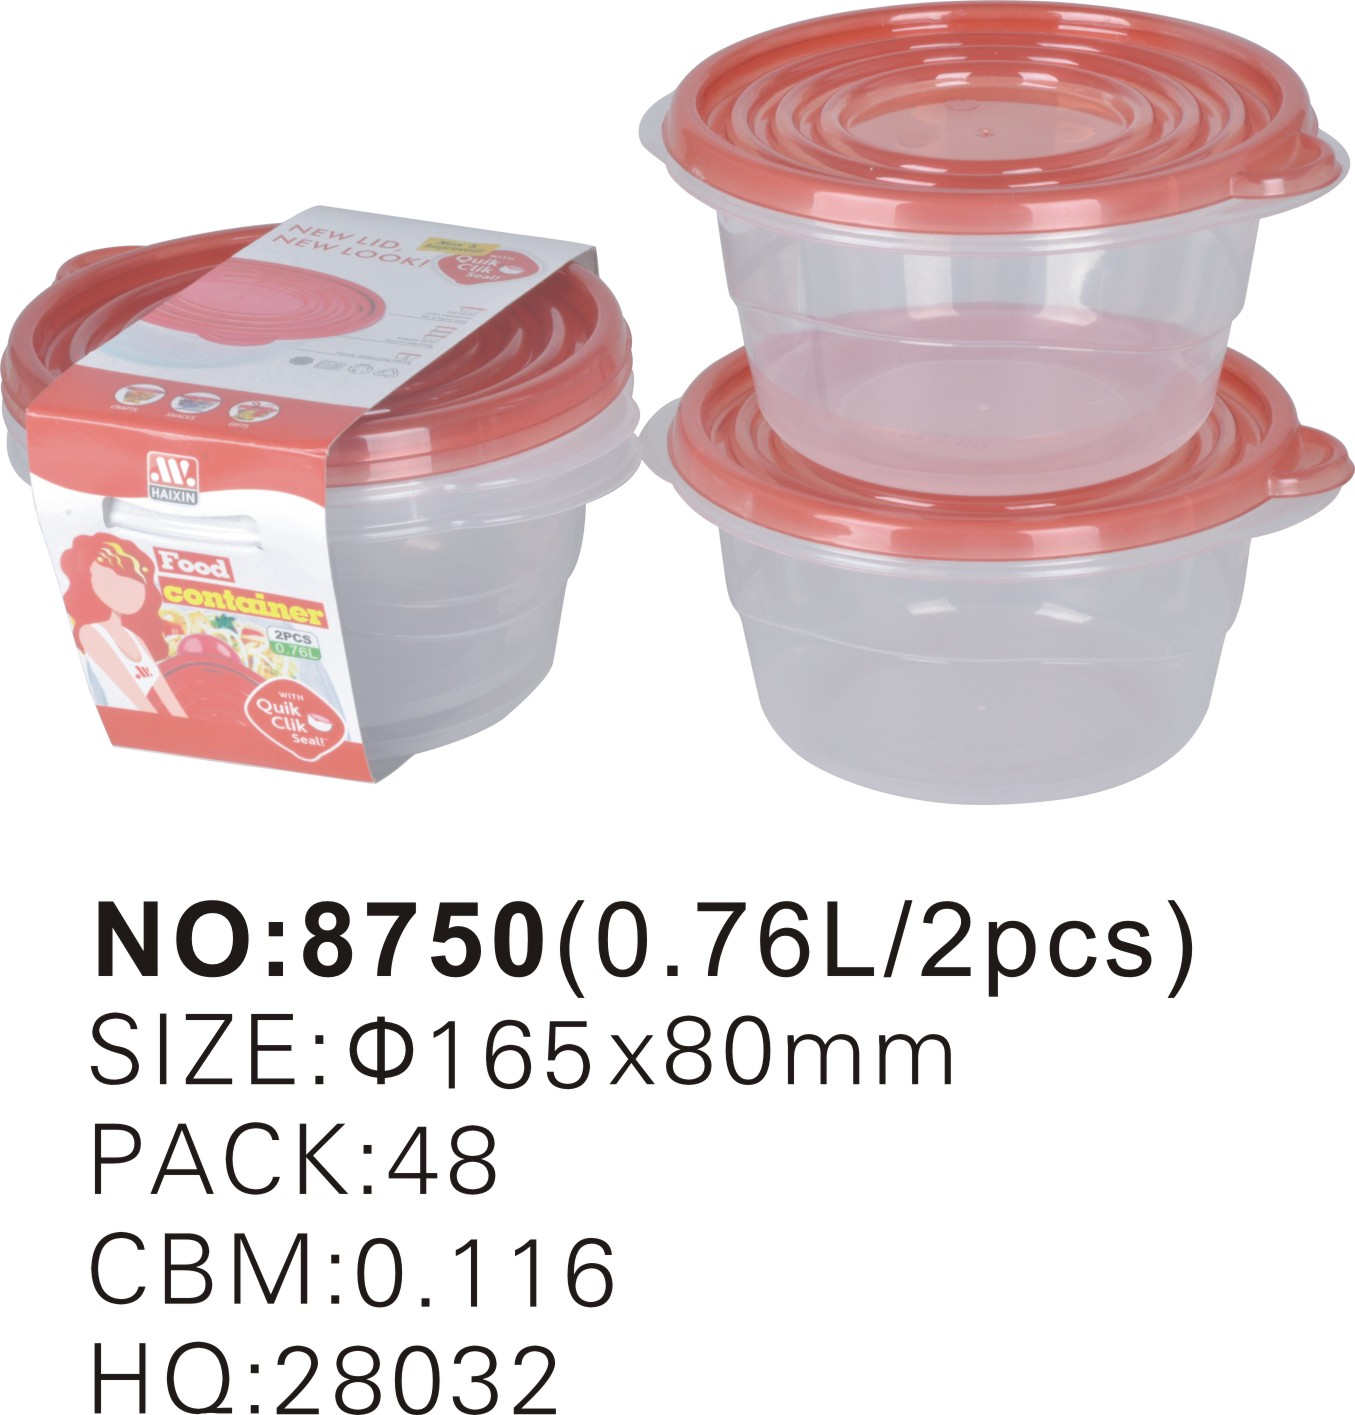 Haixing Plastic Pp Round Disposable Food Container For